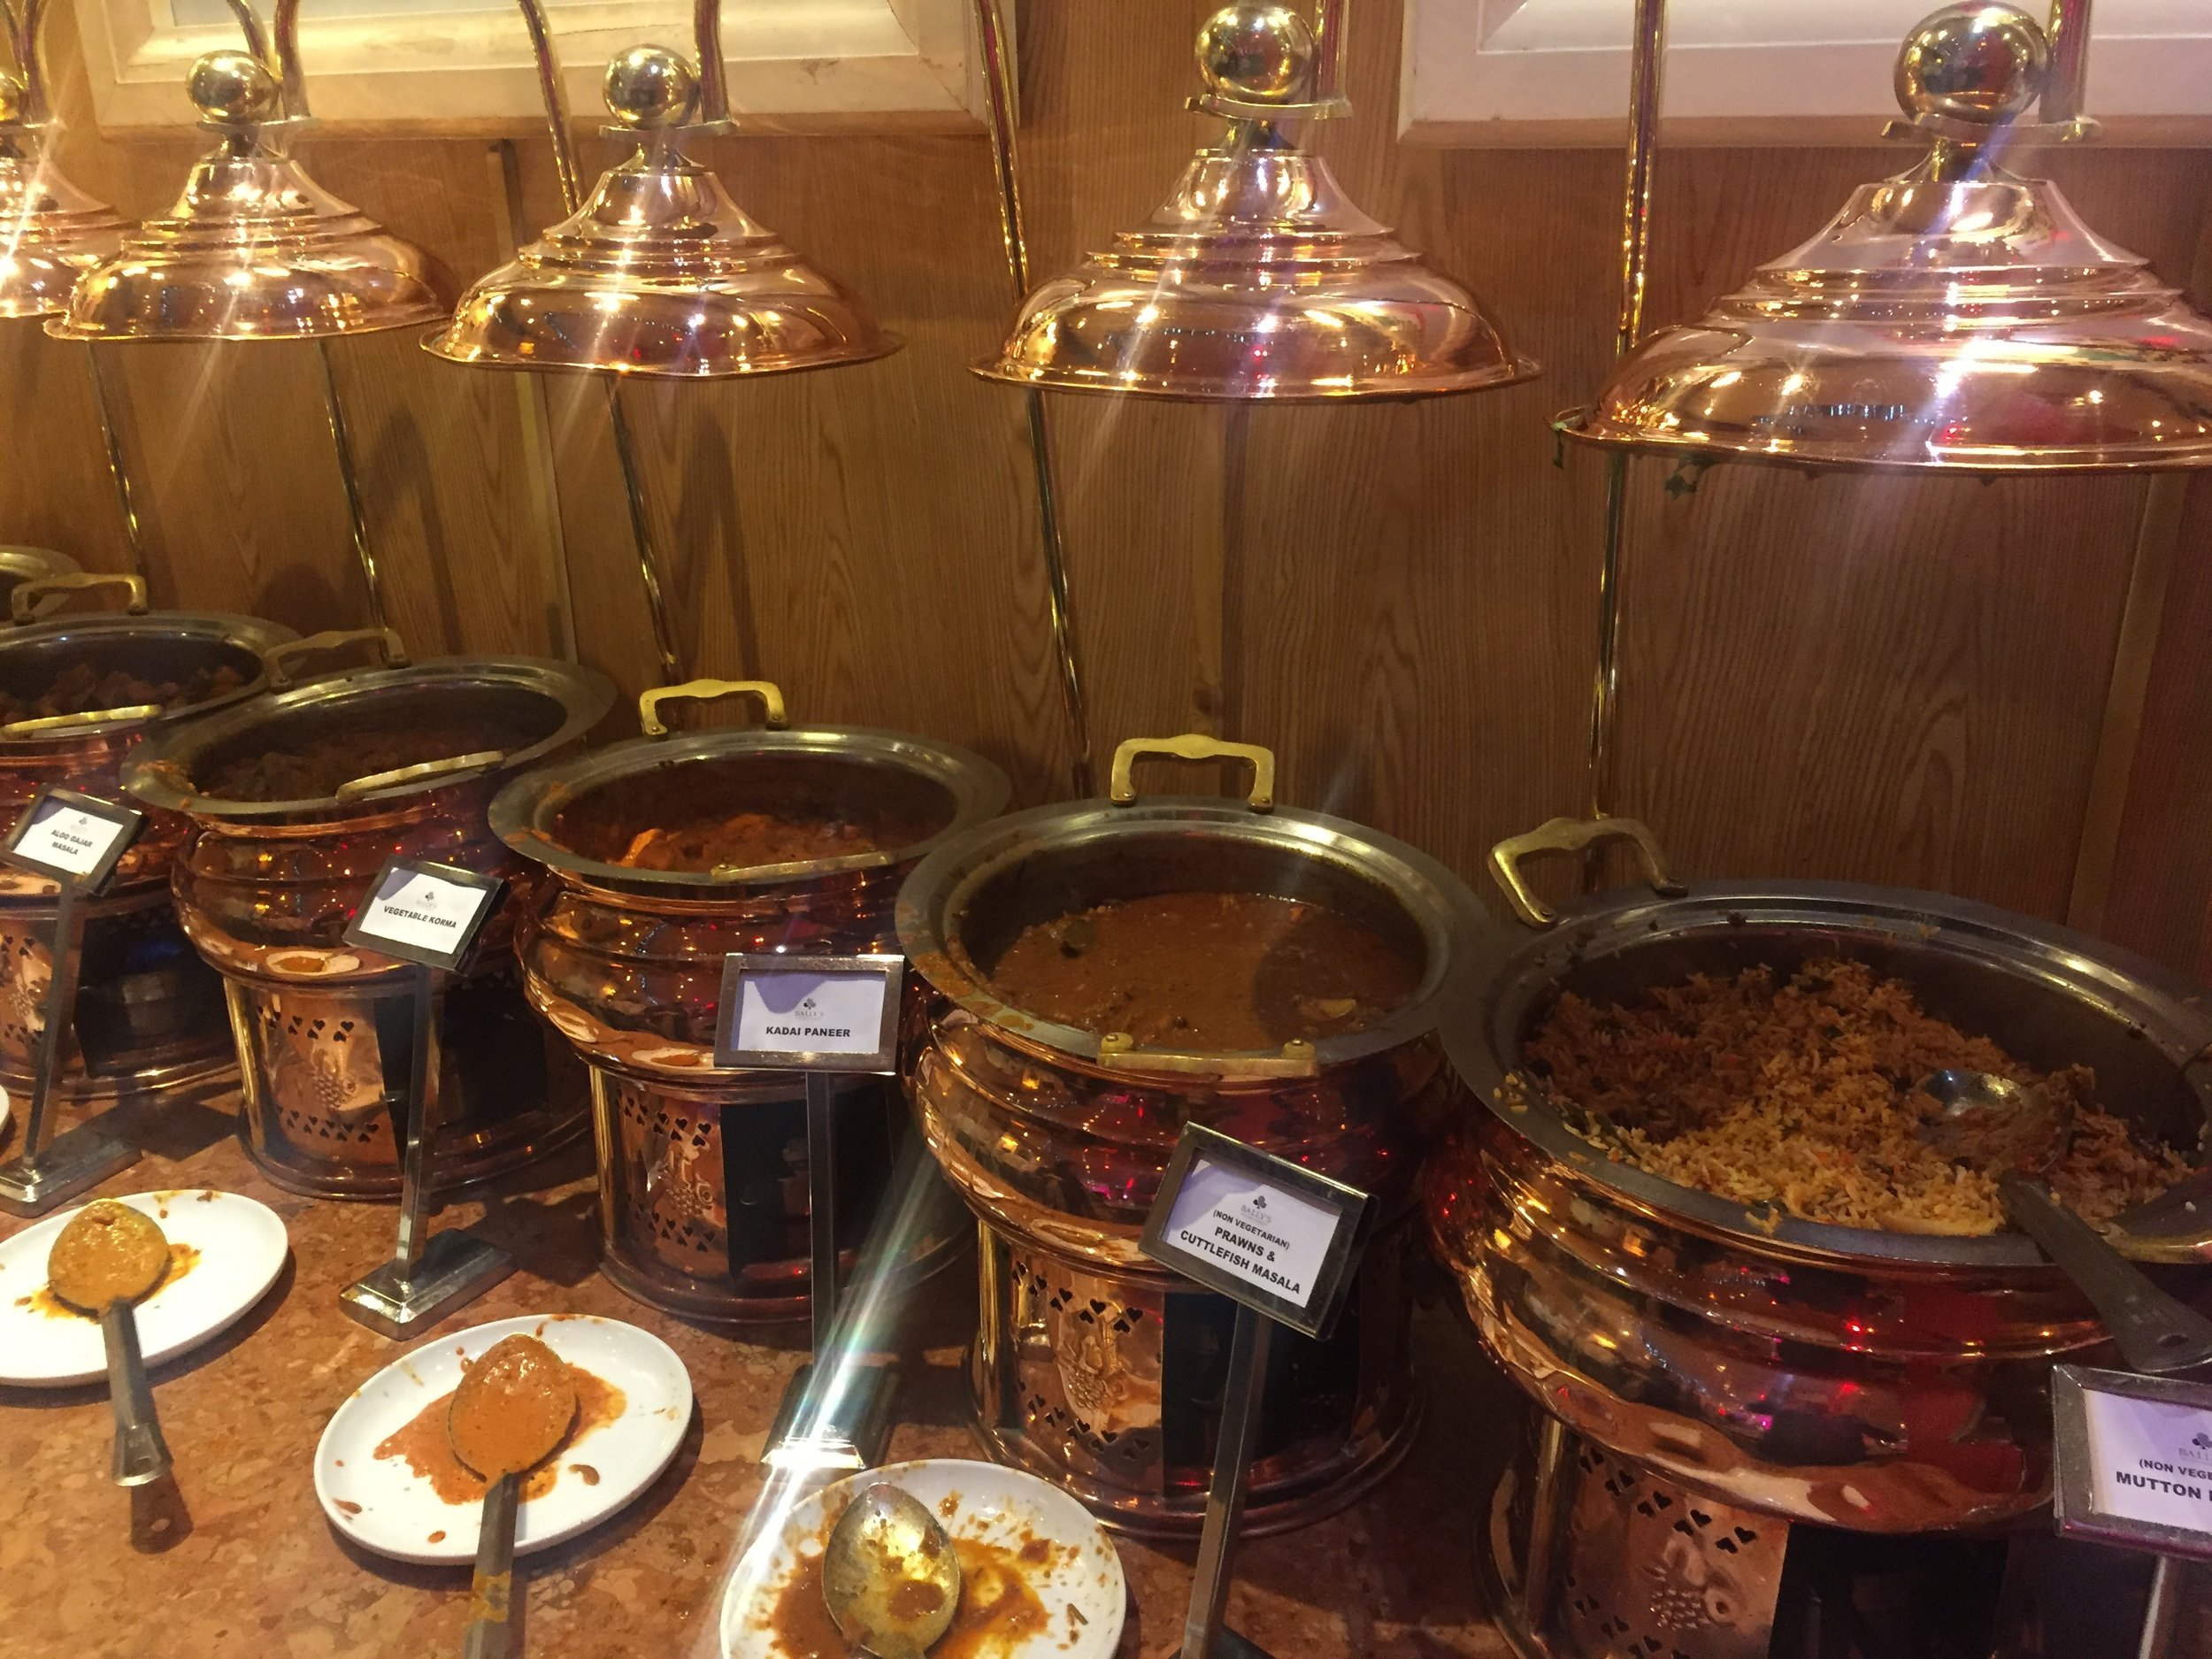 The Indian food part of the casino buffet. I realize this picture doesn't look particularly appetizing!